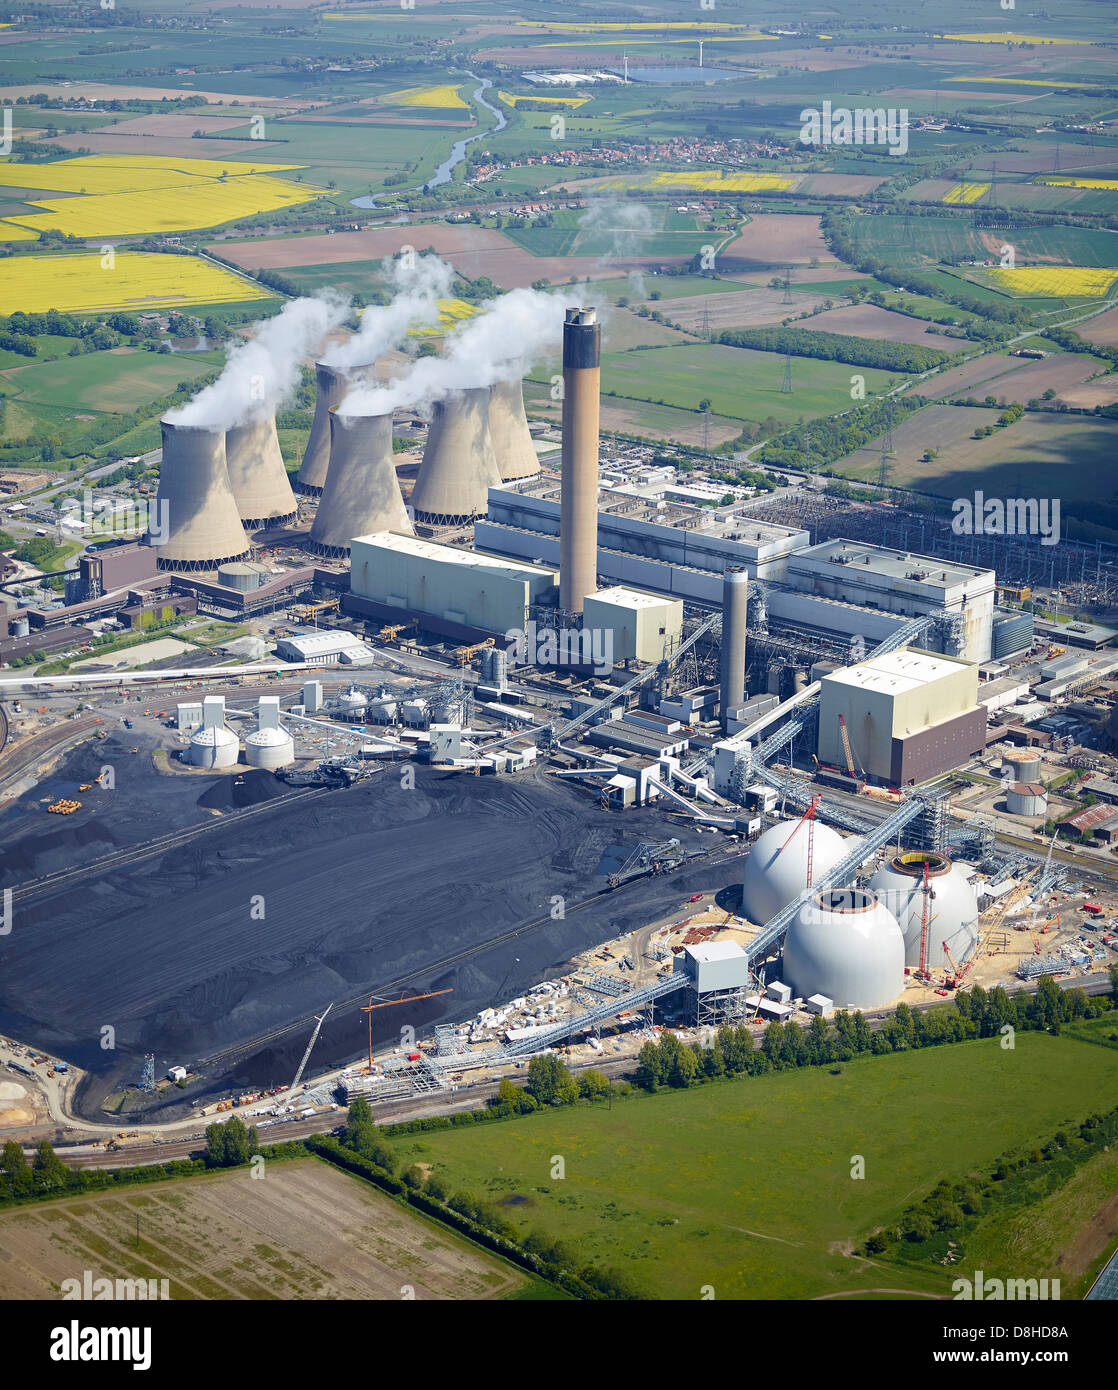 Storage units for Biomass fuel being constructed at Drax Power Station, Yorkshire, Northern England - Stock Image